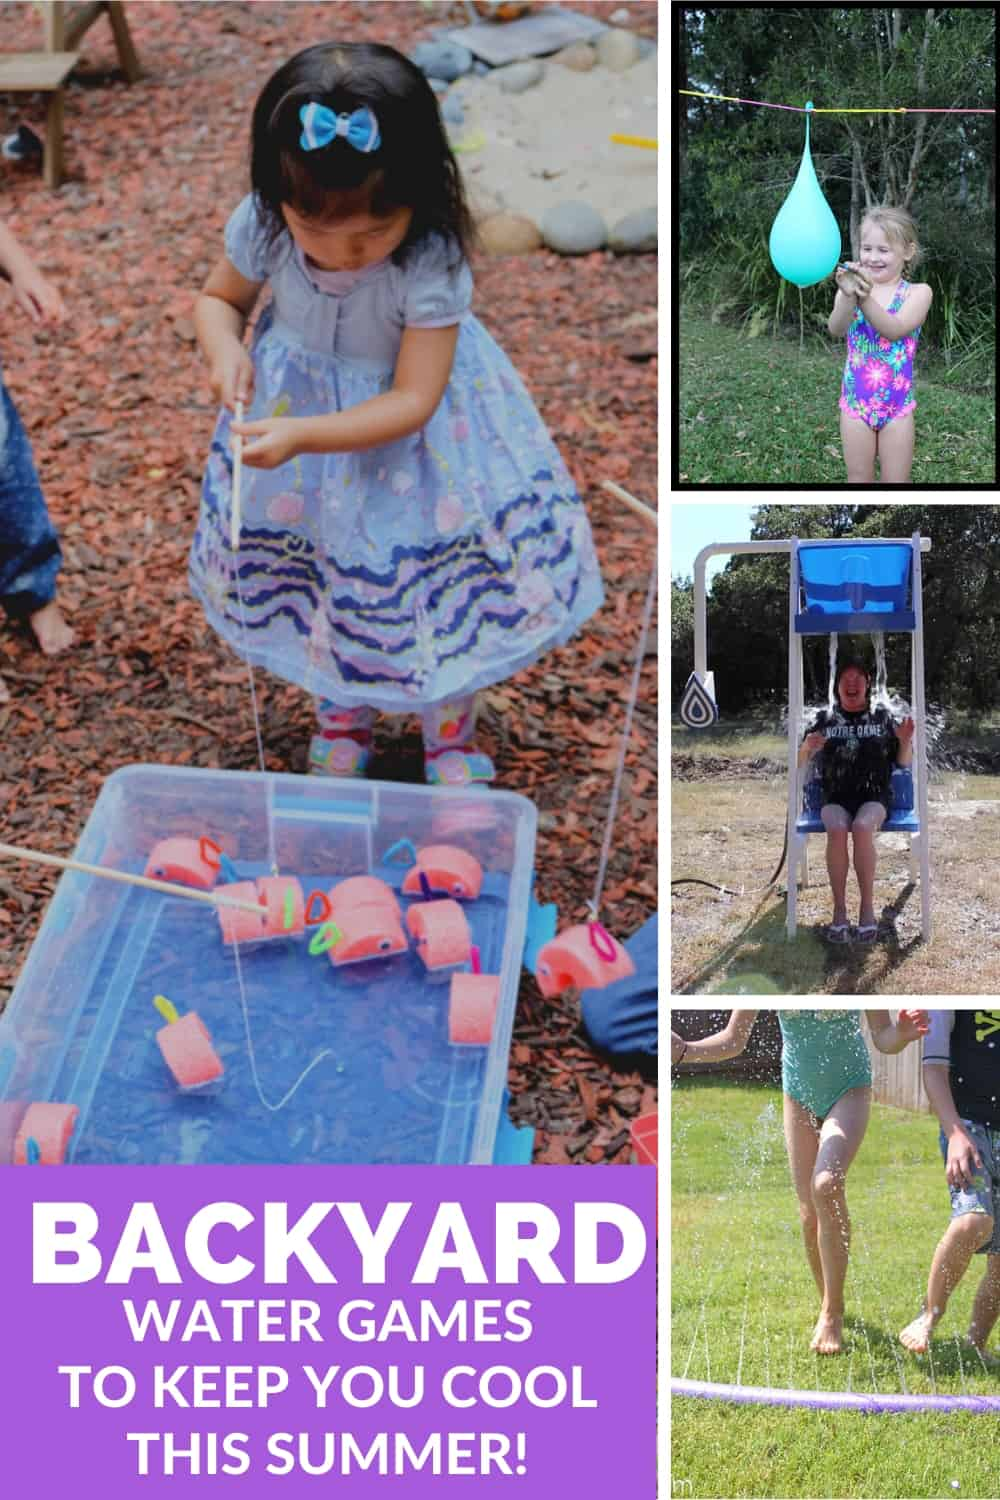 collage showing a variety of outdoor water games for summer